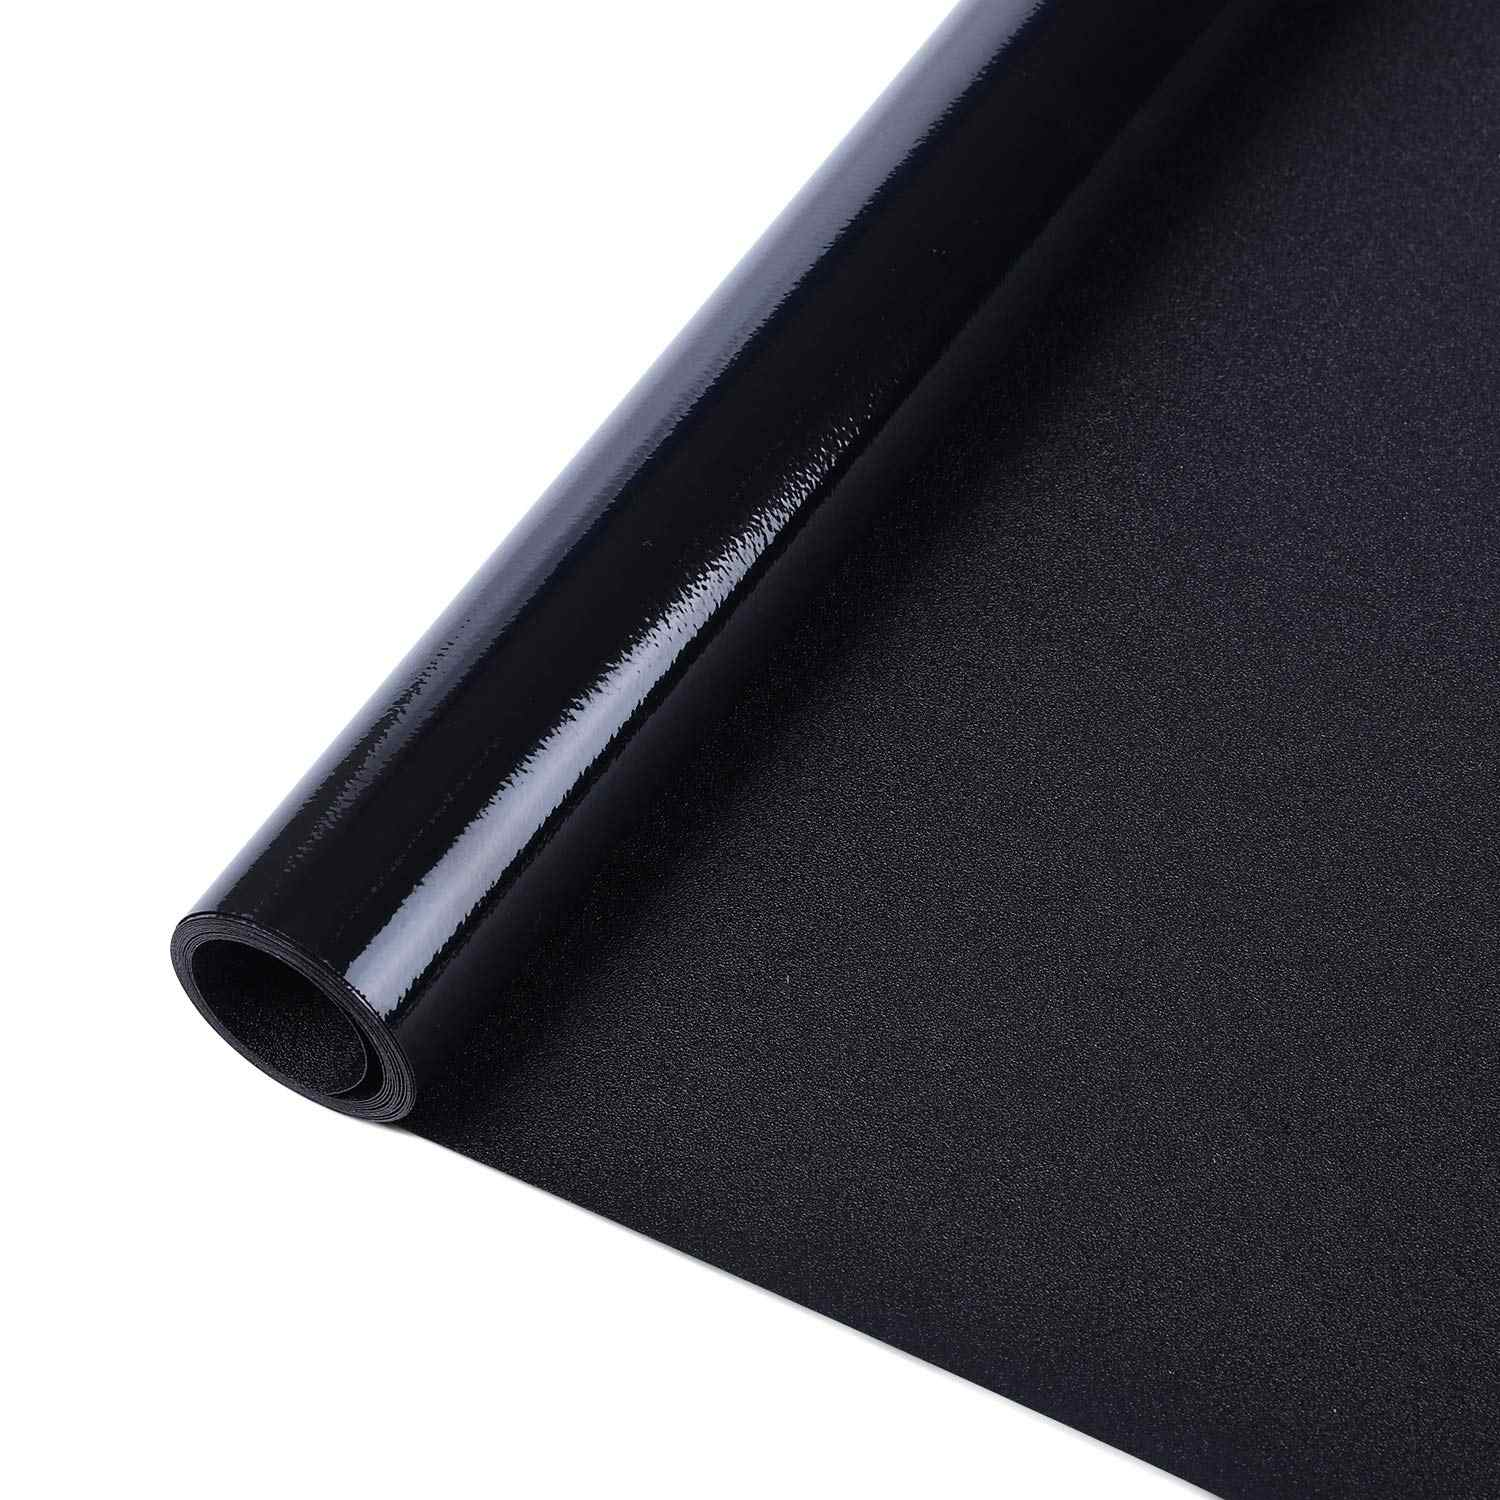 Funlife Window Blackout Film Vinyl Static Cling Tint Darkening Frosted Black Window Sticker Insulation 100% Light Blocking Film